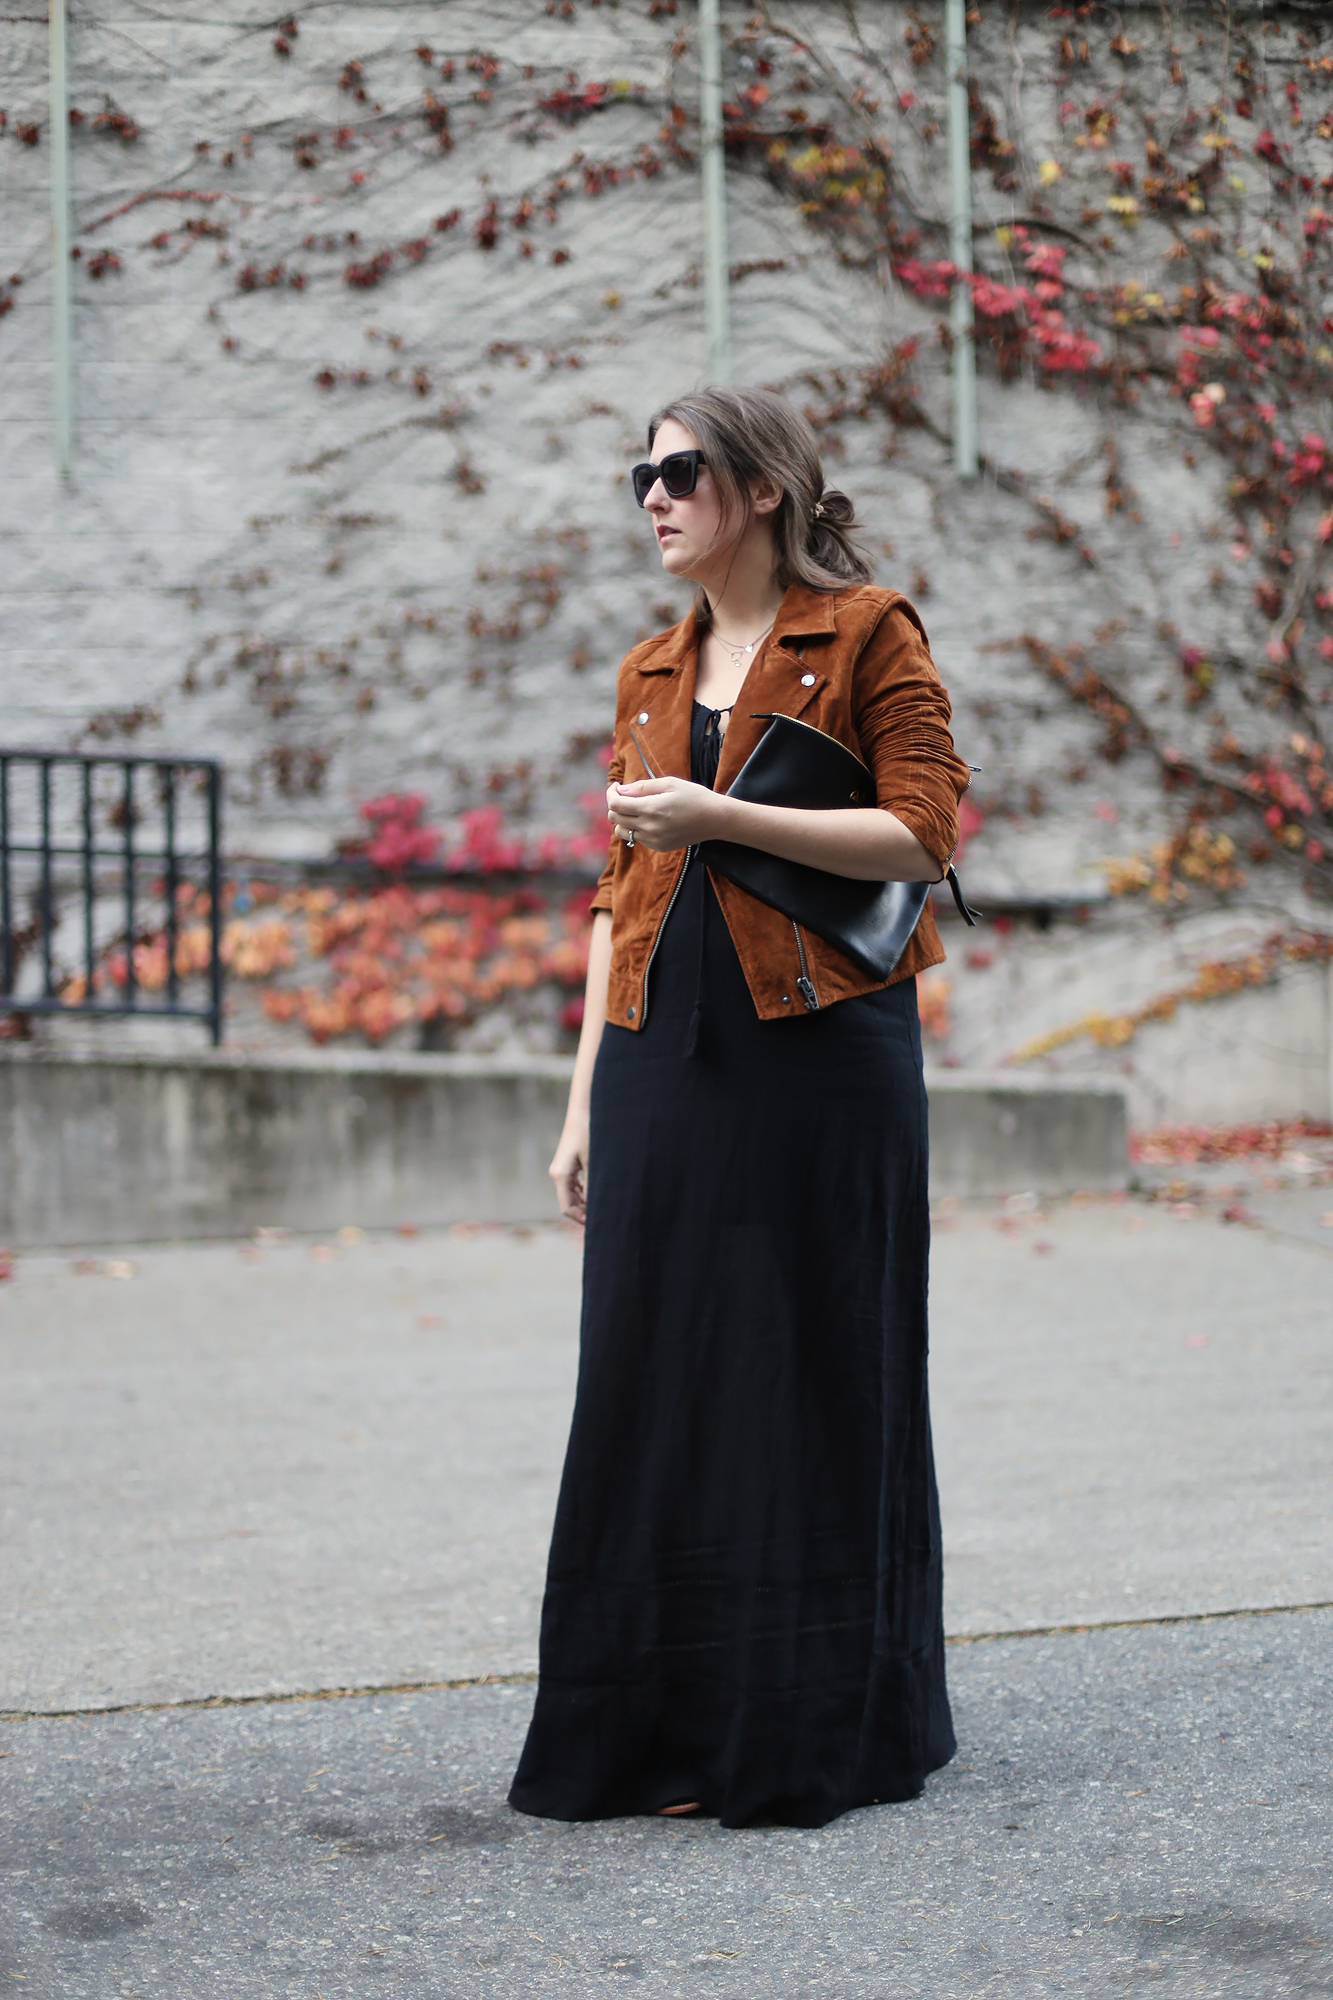 Amazing chic street style. Layering is such a great way to use items in your closet that you already own to make up new outfits.